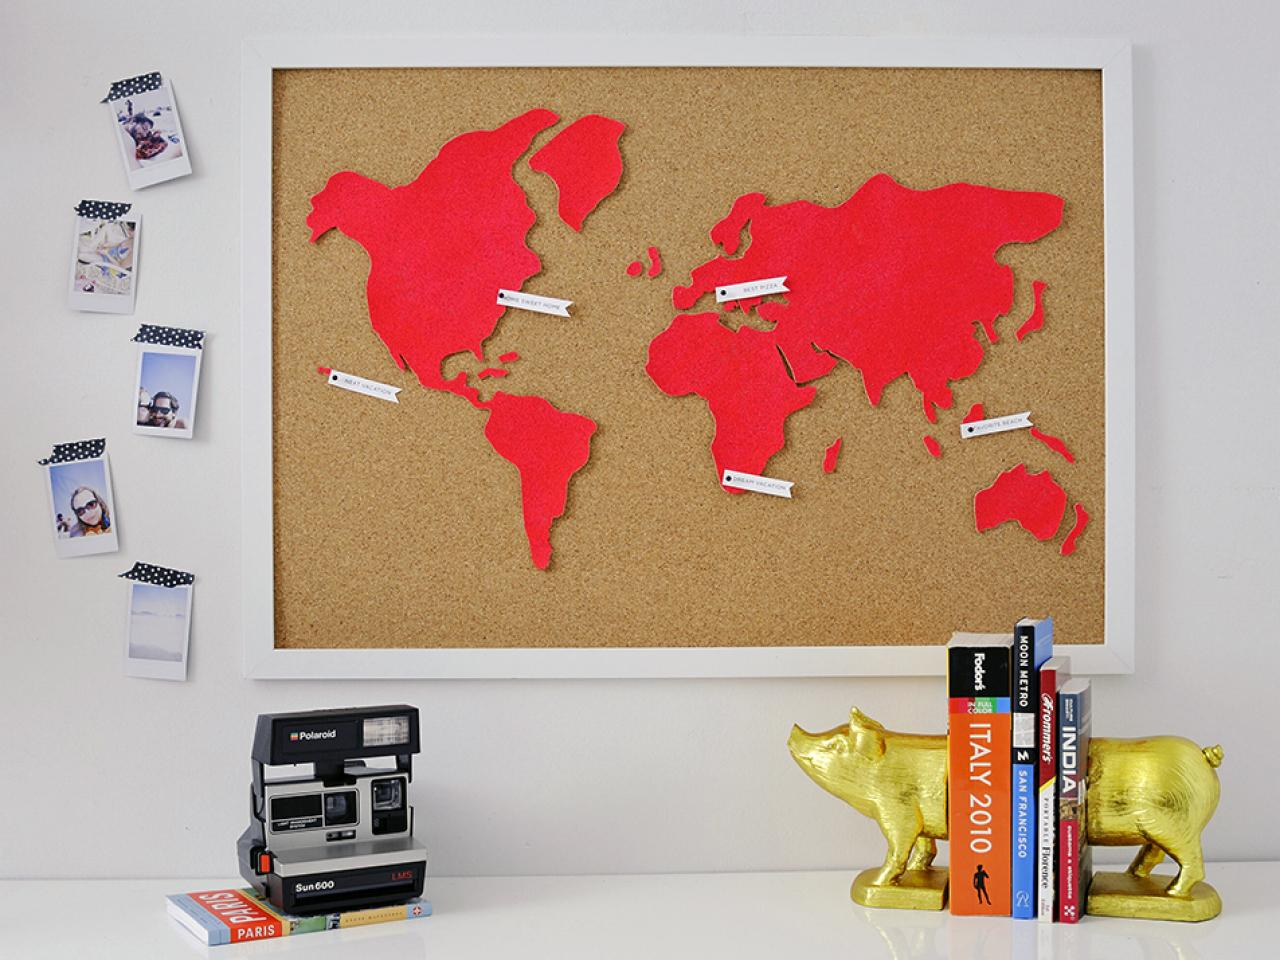 DIY Wall Art Make A Custom Corkboard World Map HGTV - Us travel map on cork board